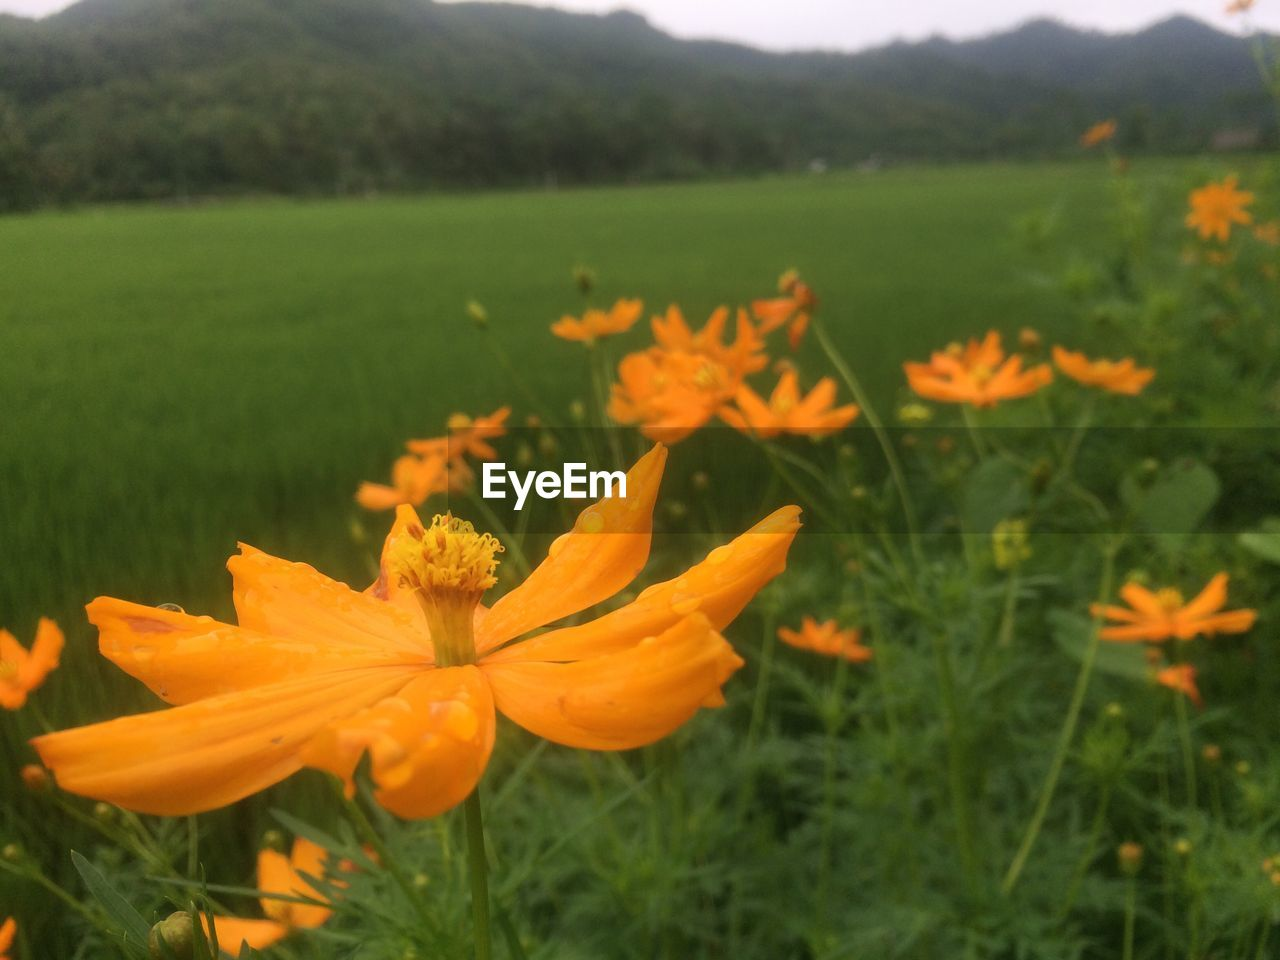 flower, growth, nature, petal, beauty in nature, plant, field, fragility, freshness, blooming, flower head, no people, outdoors, yellow, poppy, day, close-up